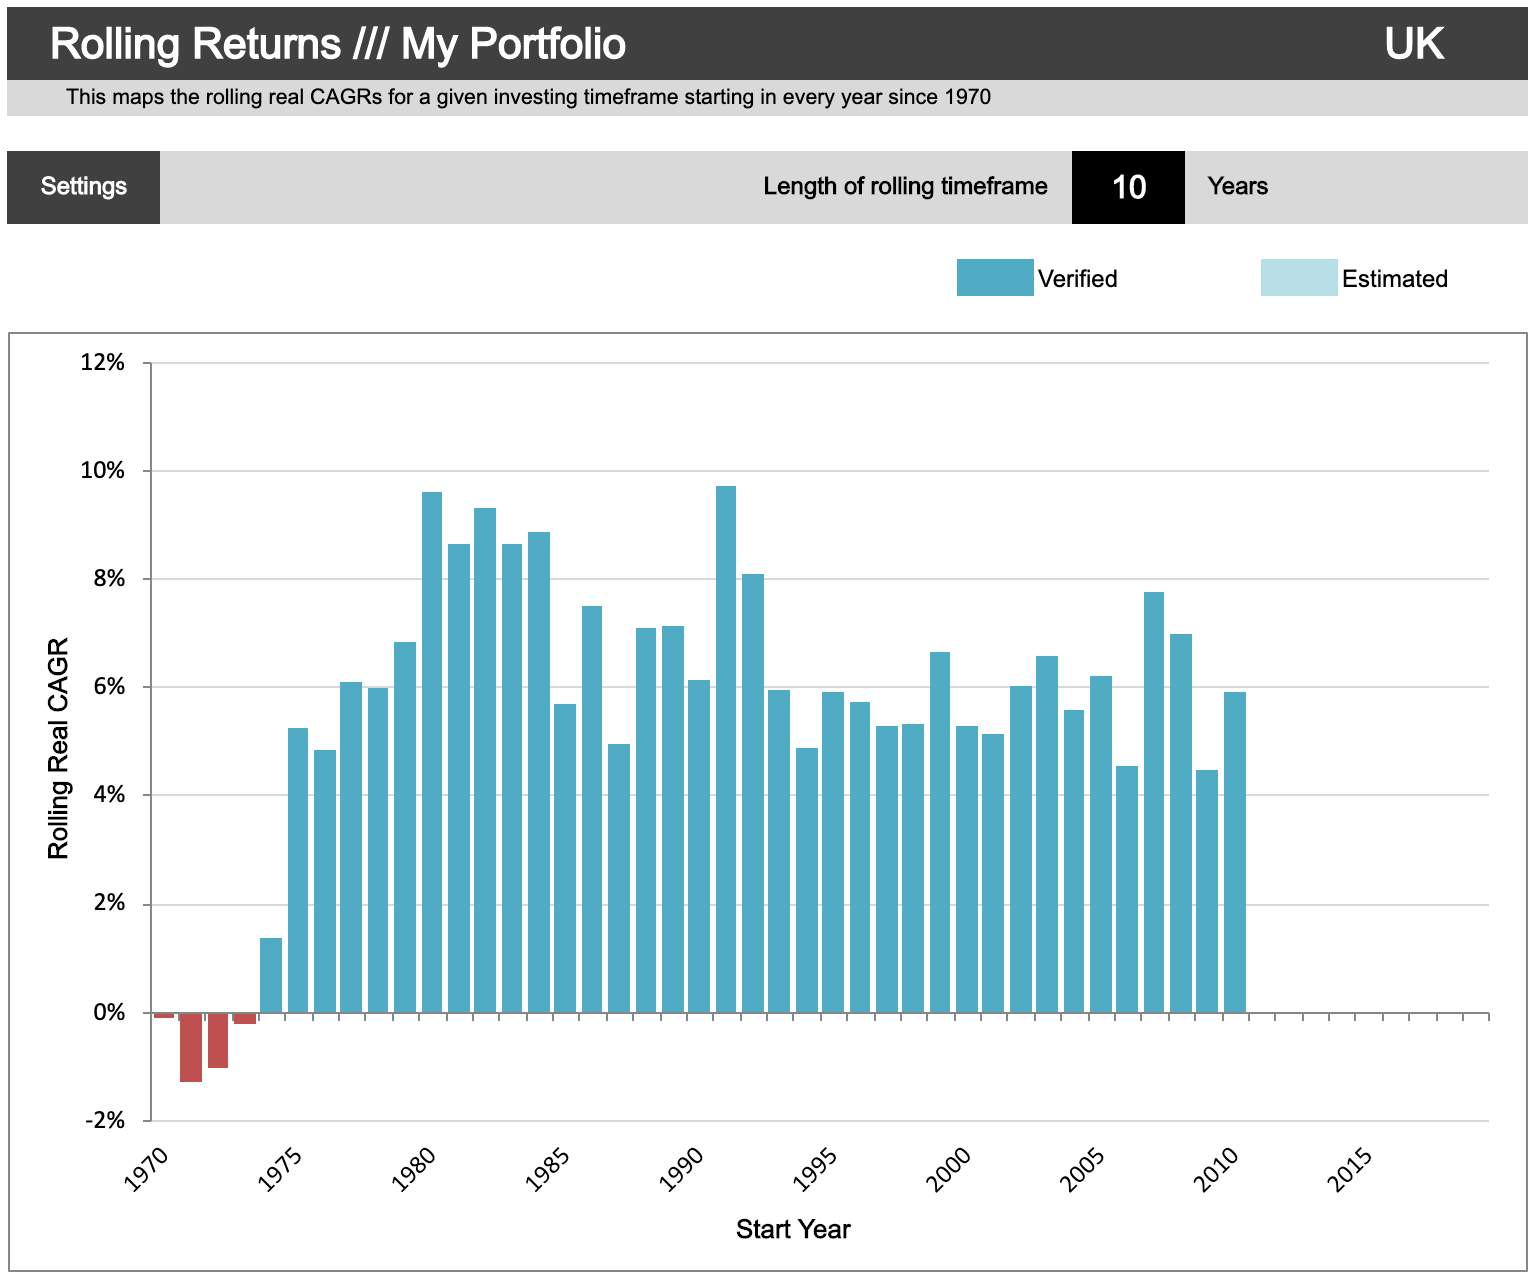 rolling 10-year returns all-weather portfolio for a UK investor